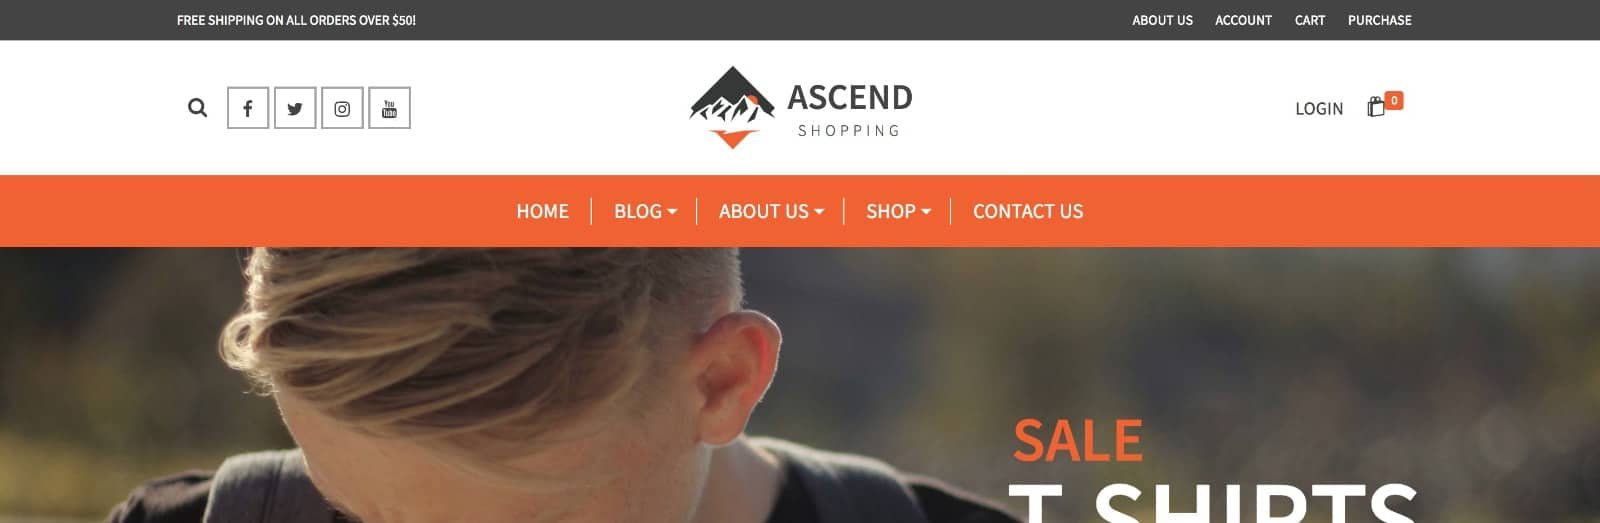 ascend-default-site-header-kadence-themes